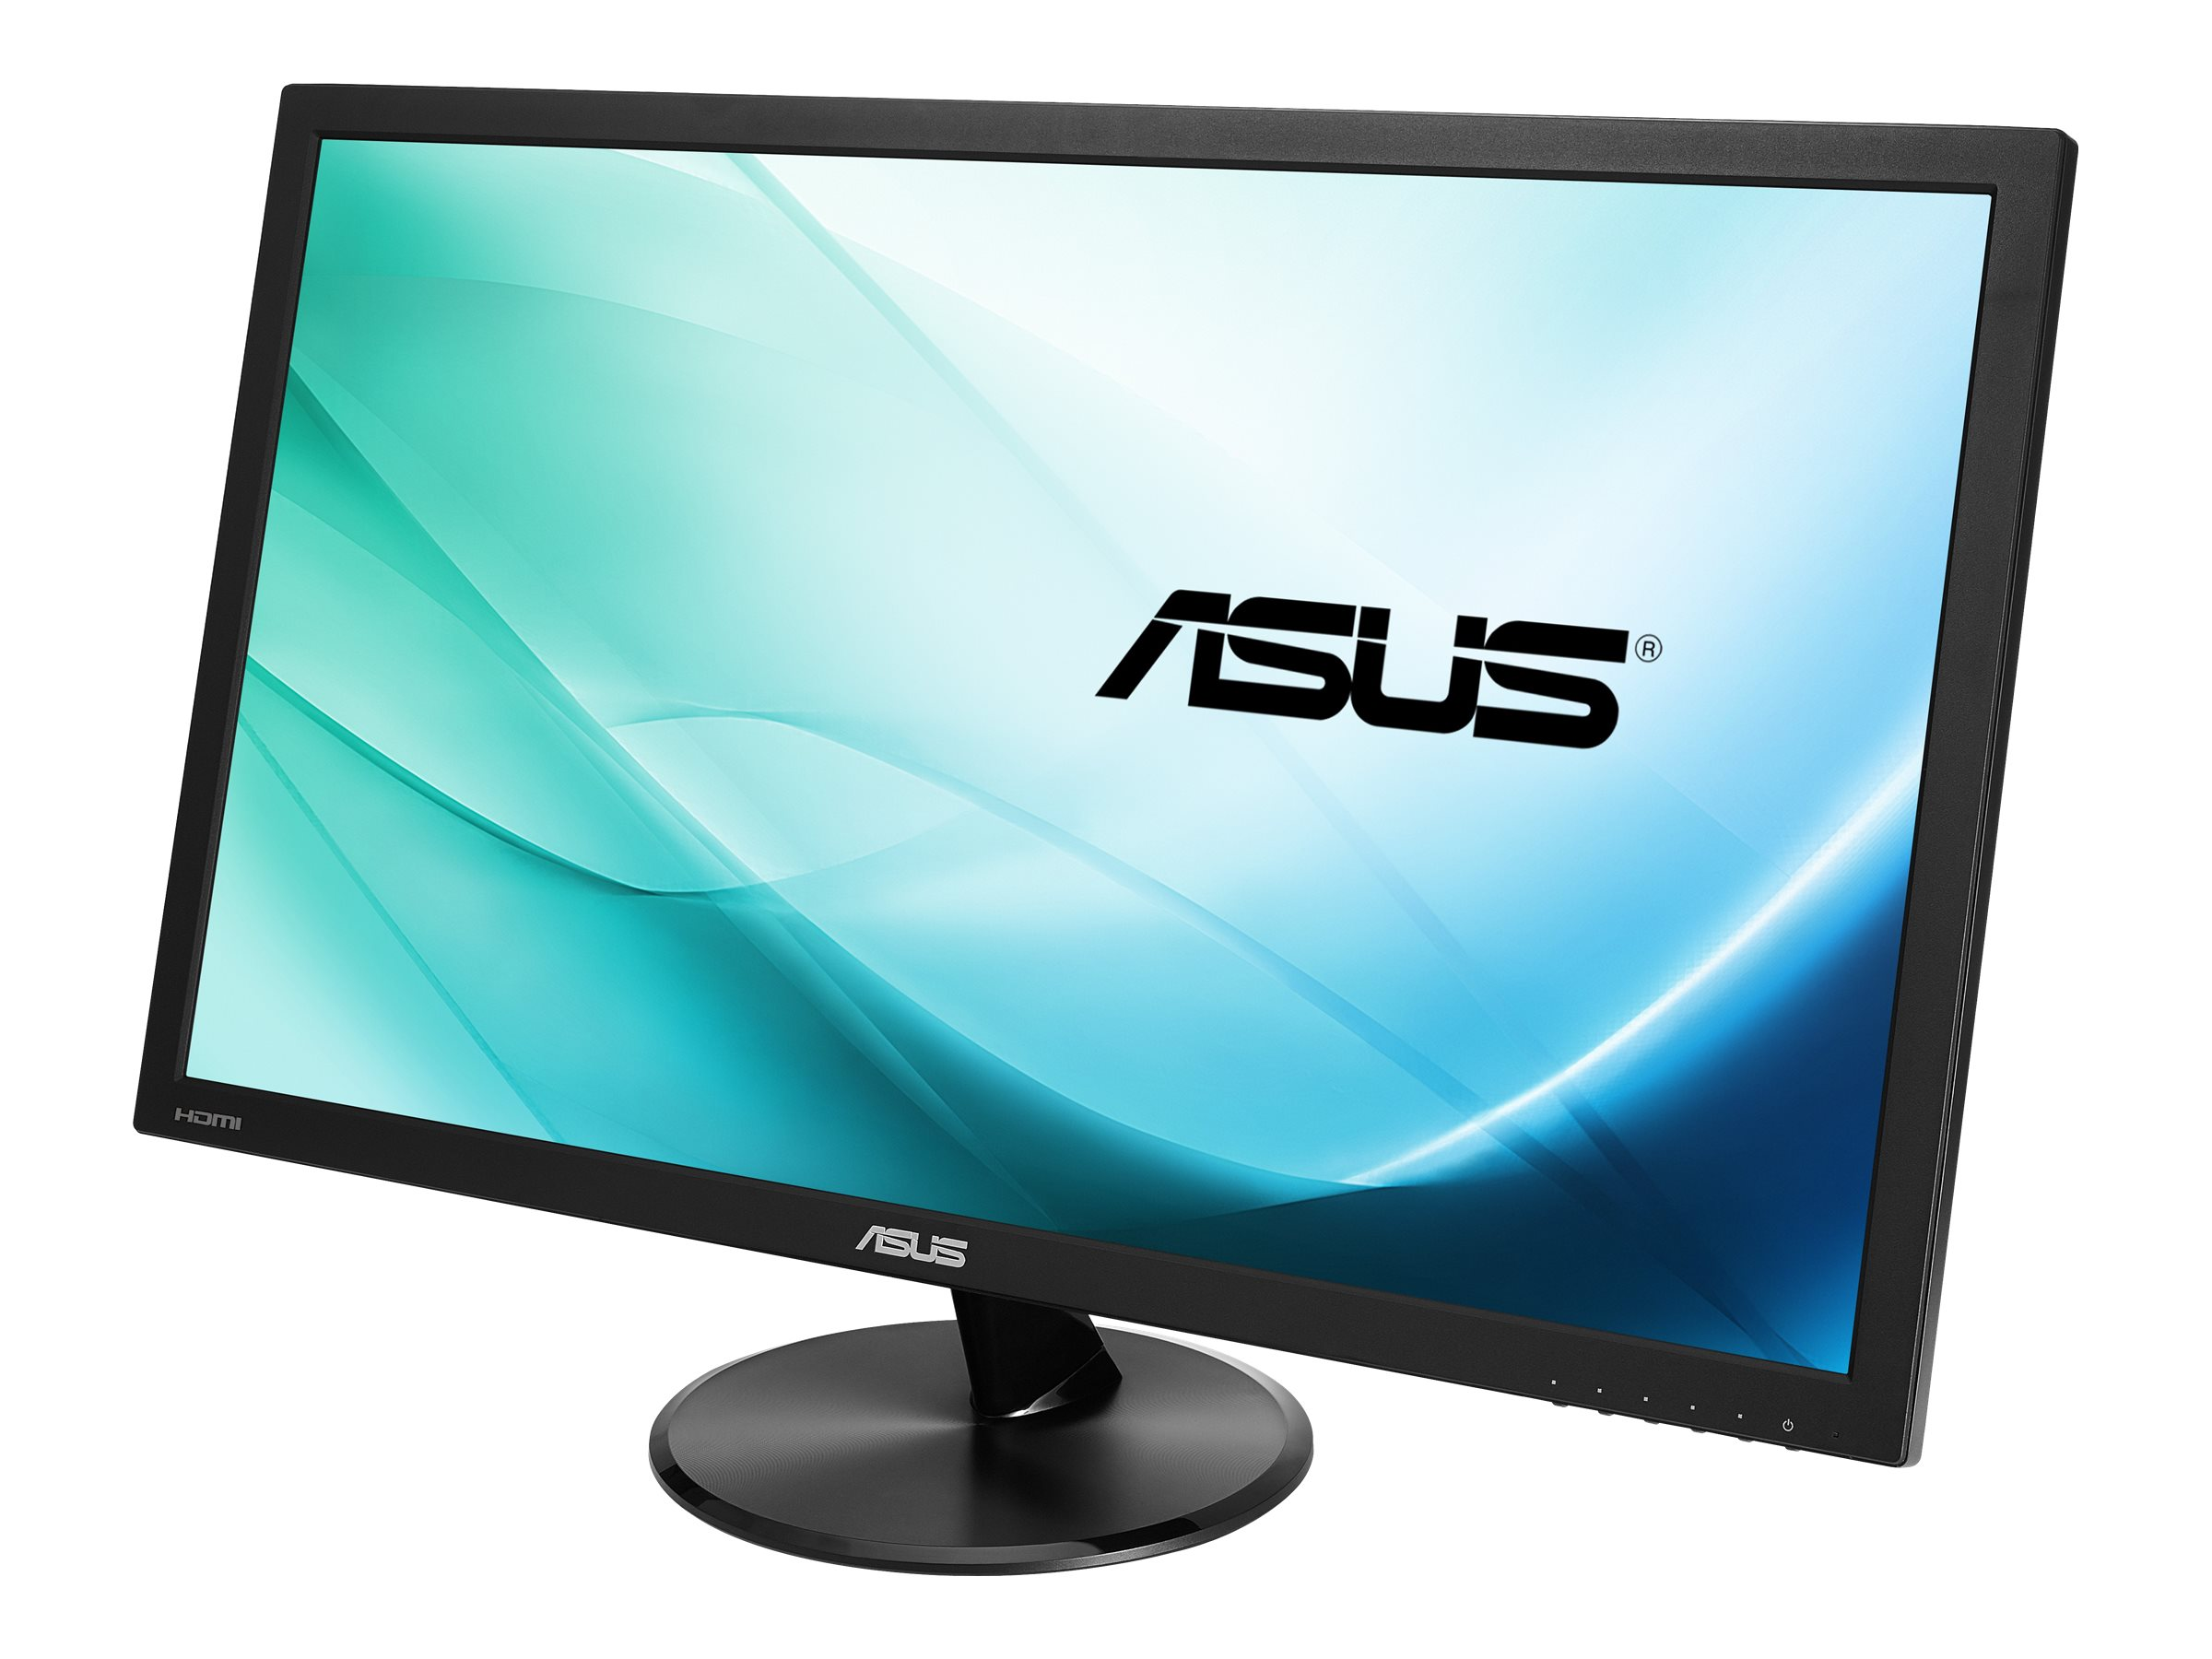 Asus 21.5 VP228H Full HD LED-LCD Monitor, Black, VP228H